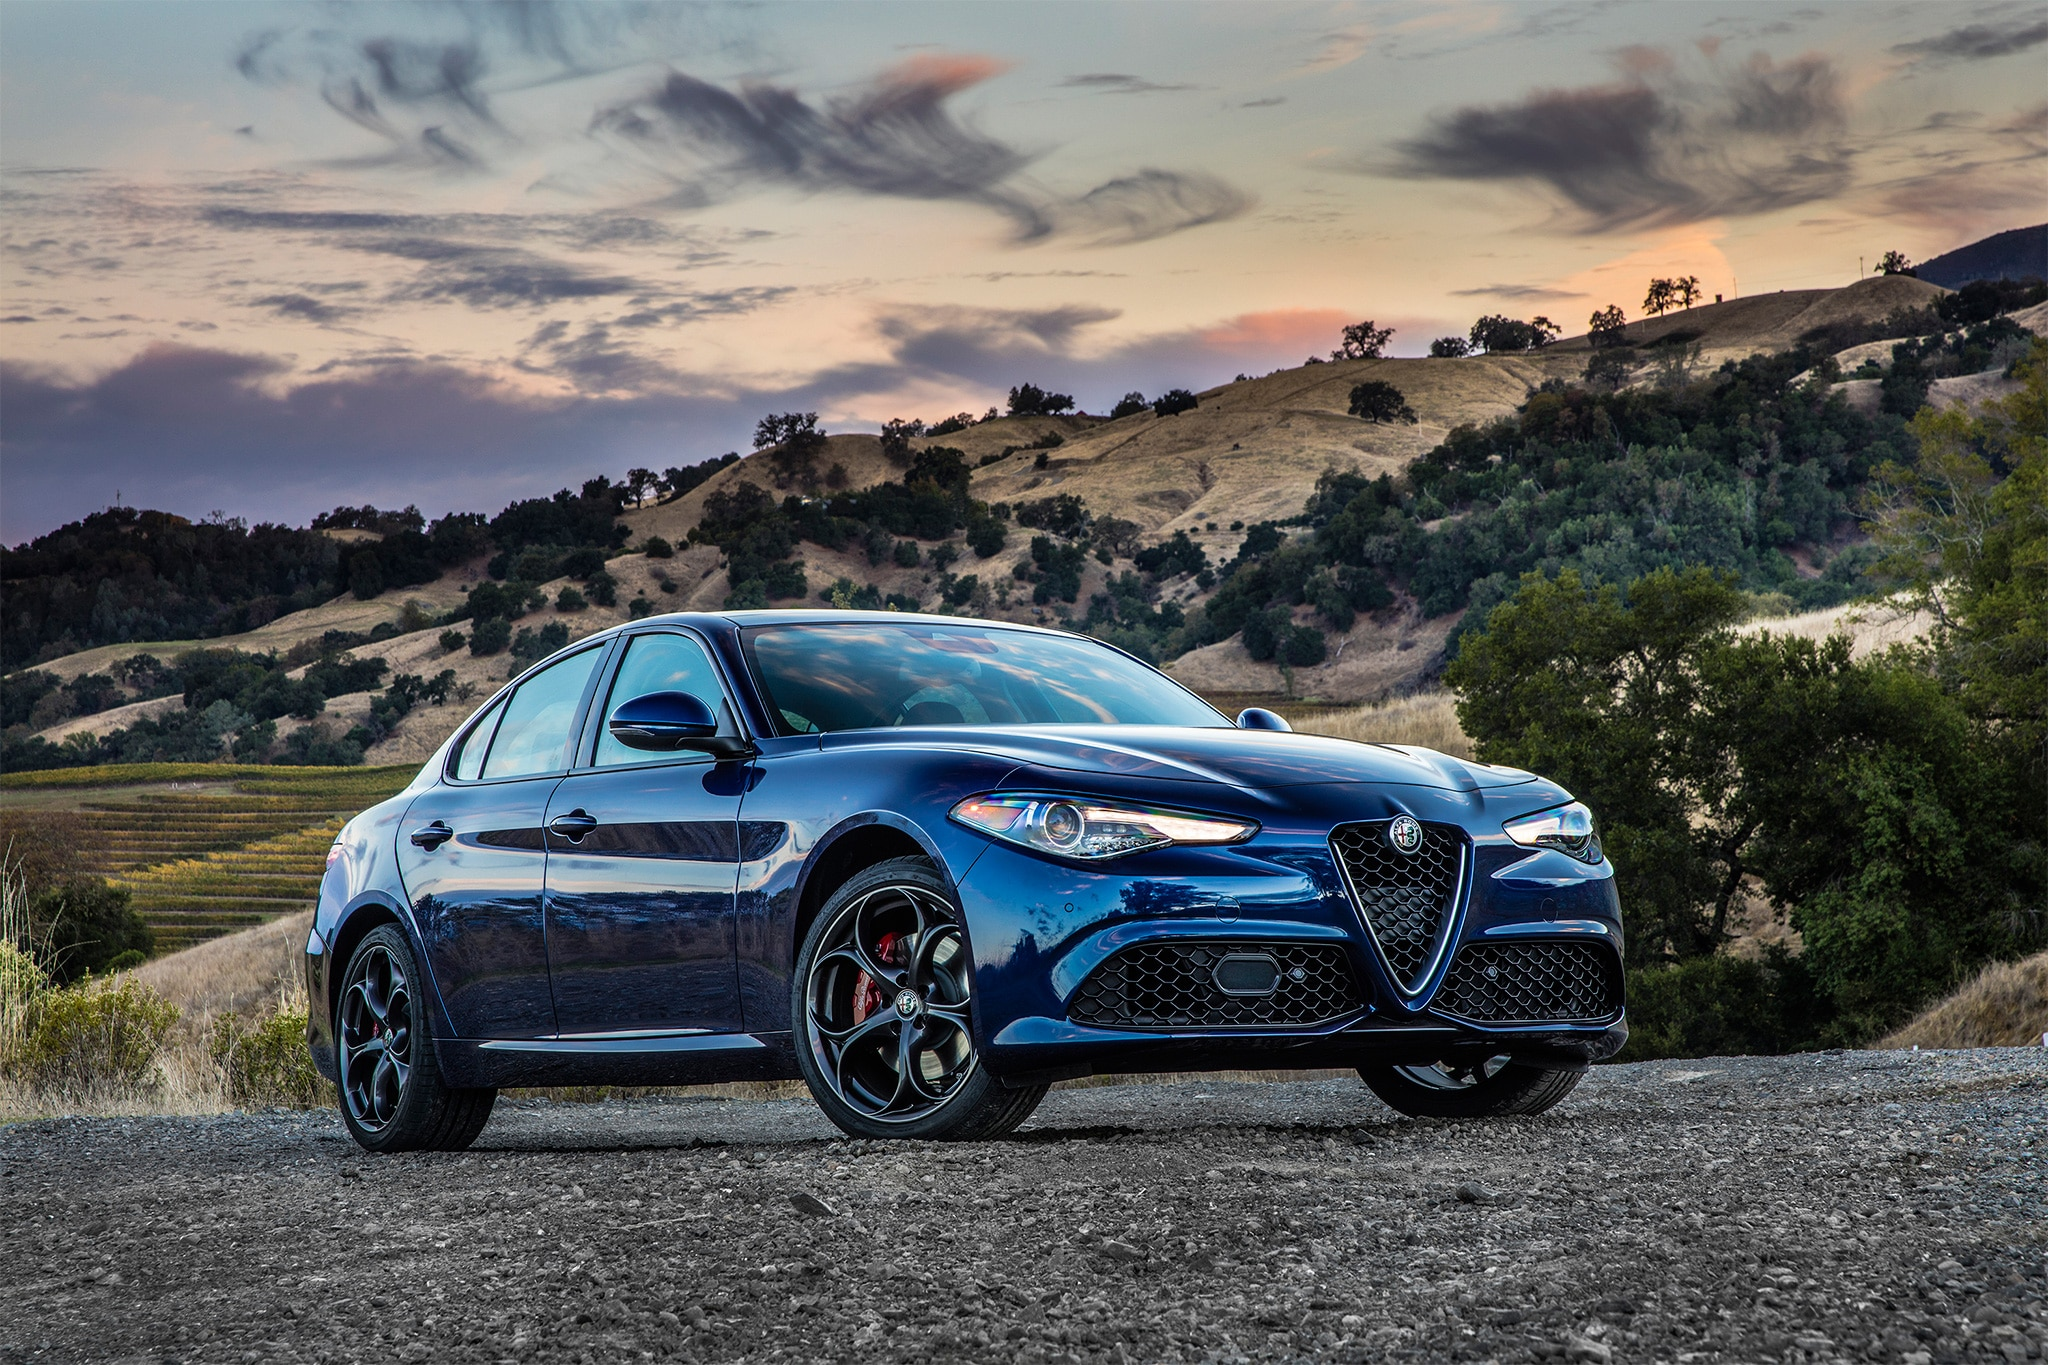 2017 alfa romeo giulia quadrifoglio u s spec first drive review automobile magazine. Black Bedroom Furniture Sets. Home Design Ideas